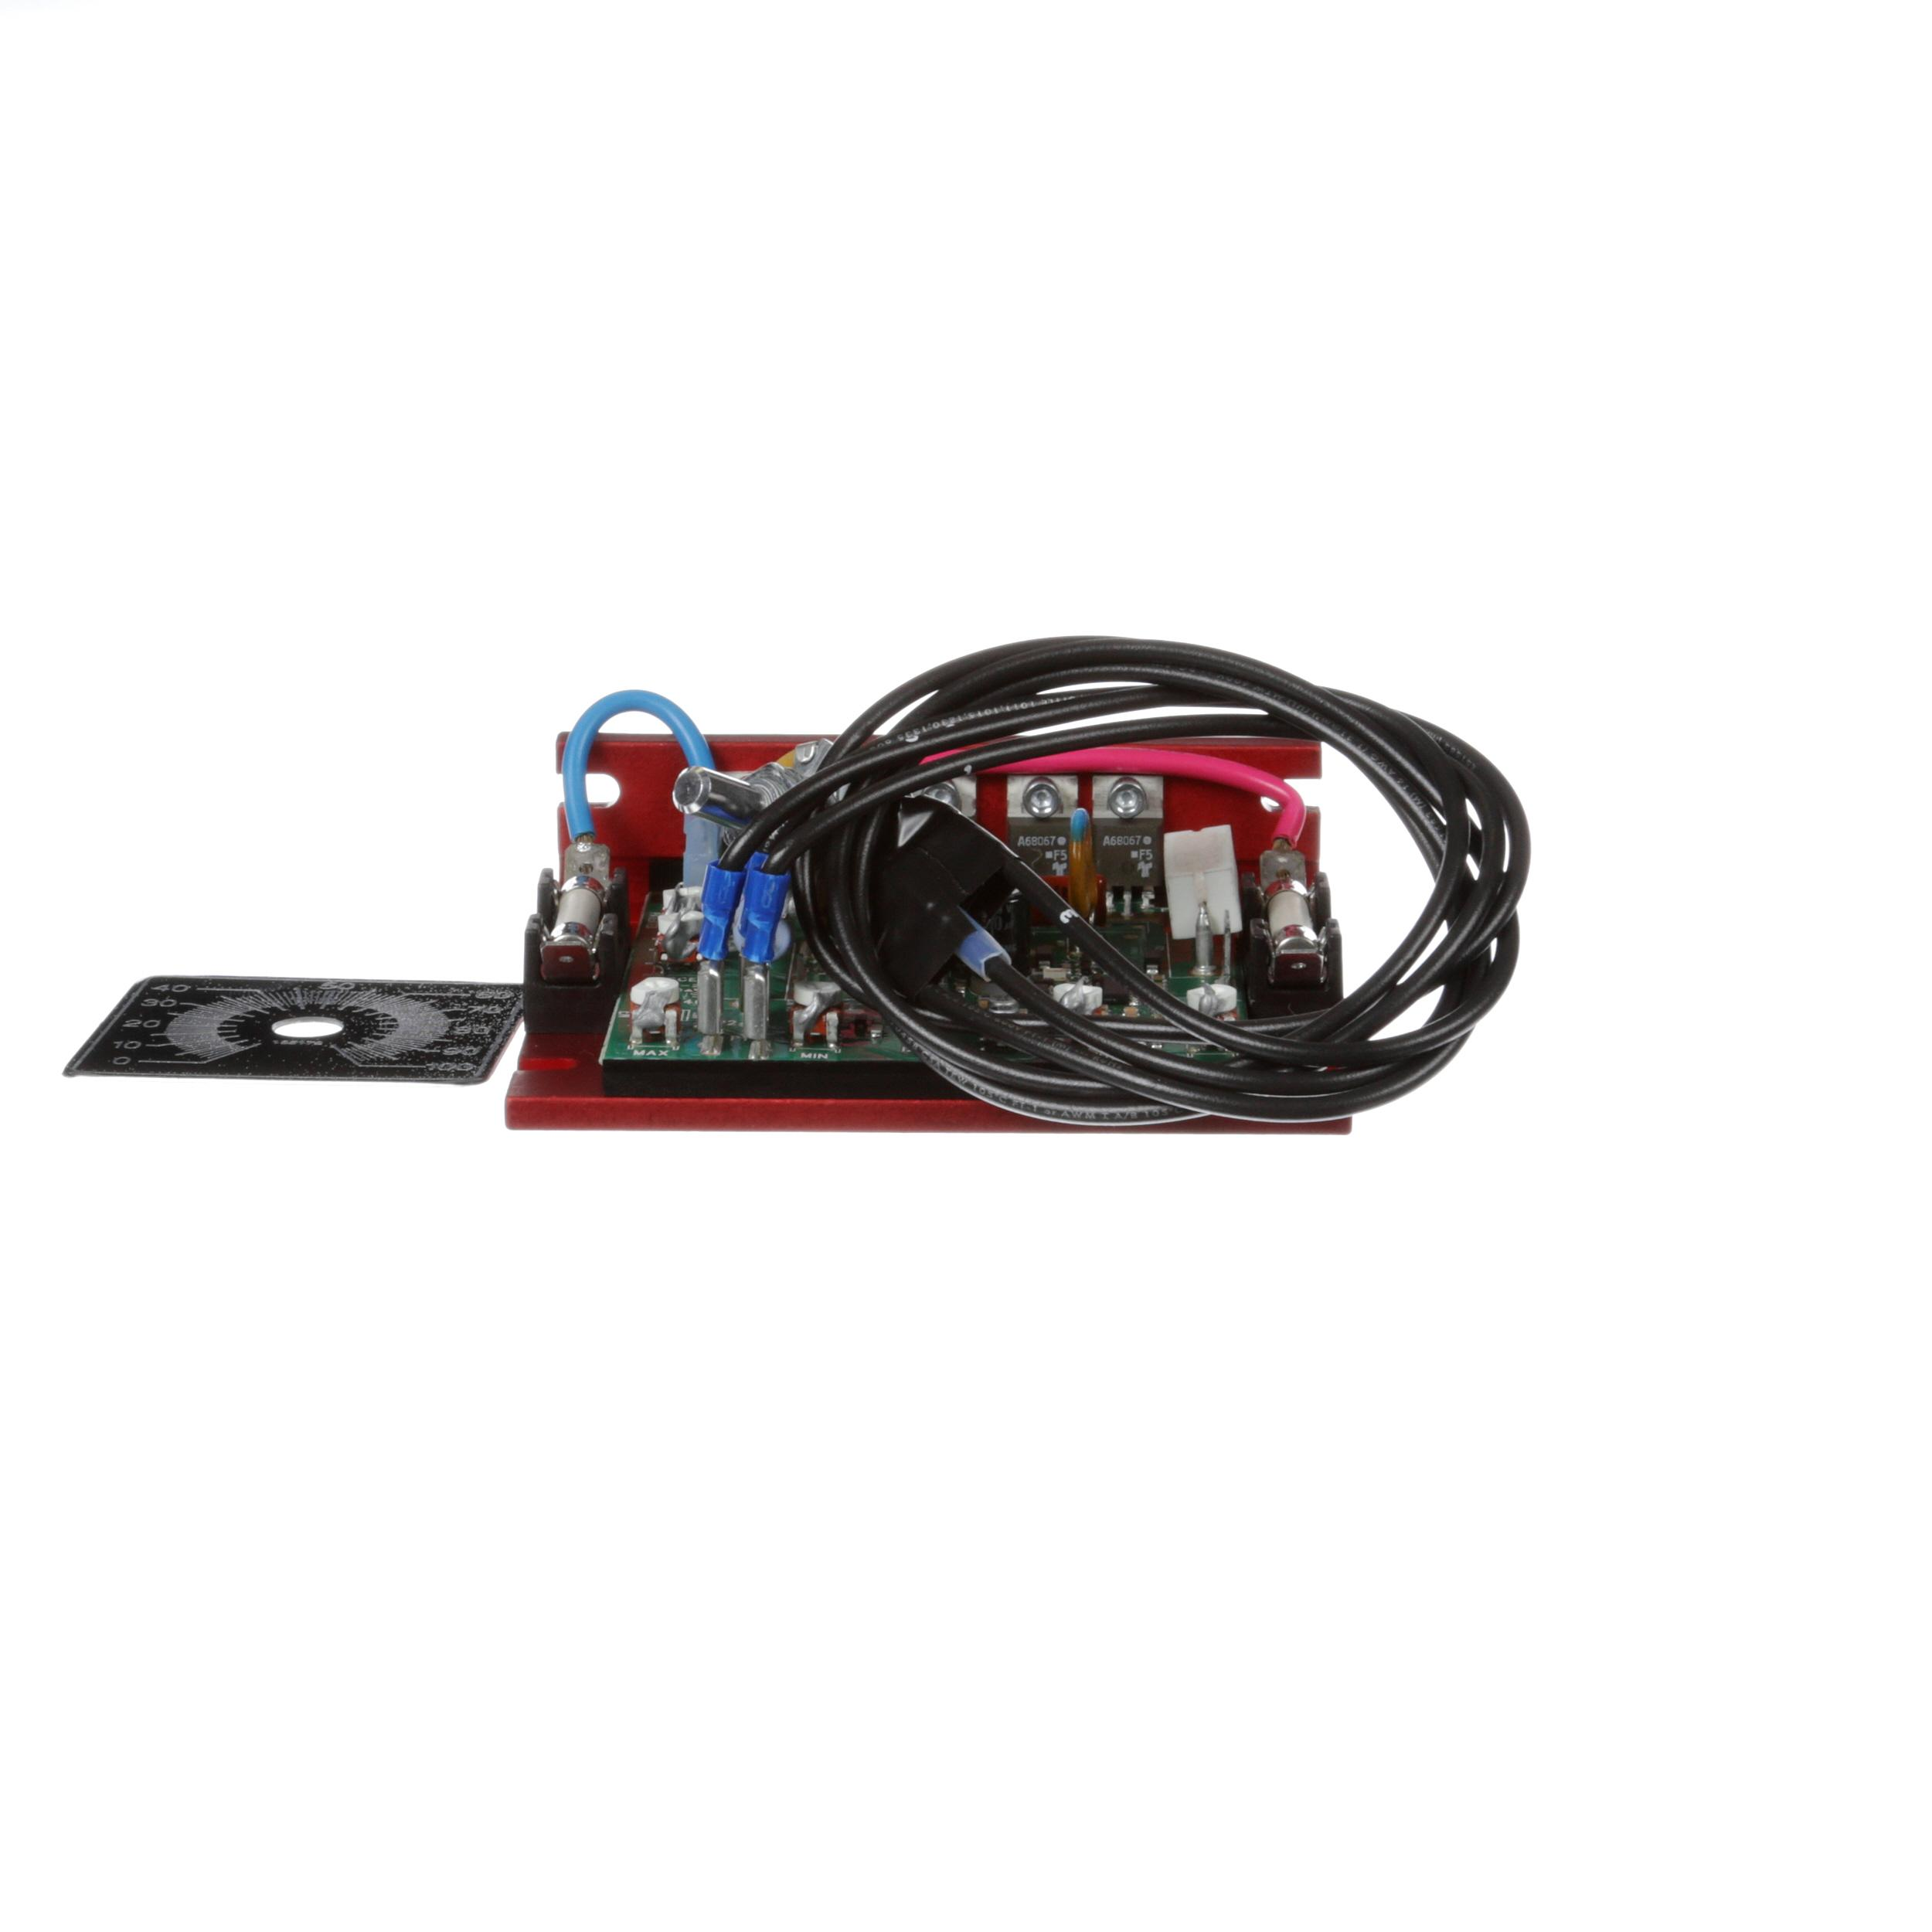 113143_R01_C04?w=300&h=300&img404=ImageComing&v=0&locale=en USen ** electro freeze kit motor speed control 120v part hc116938 nu wave spa controls a-24 wiring diagram at suagrazia.org